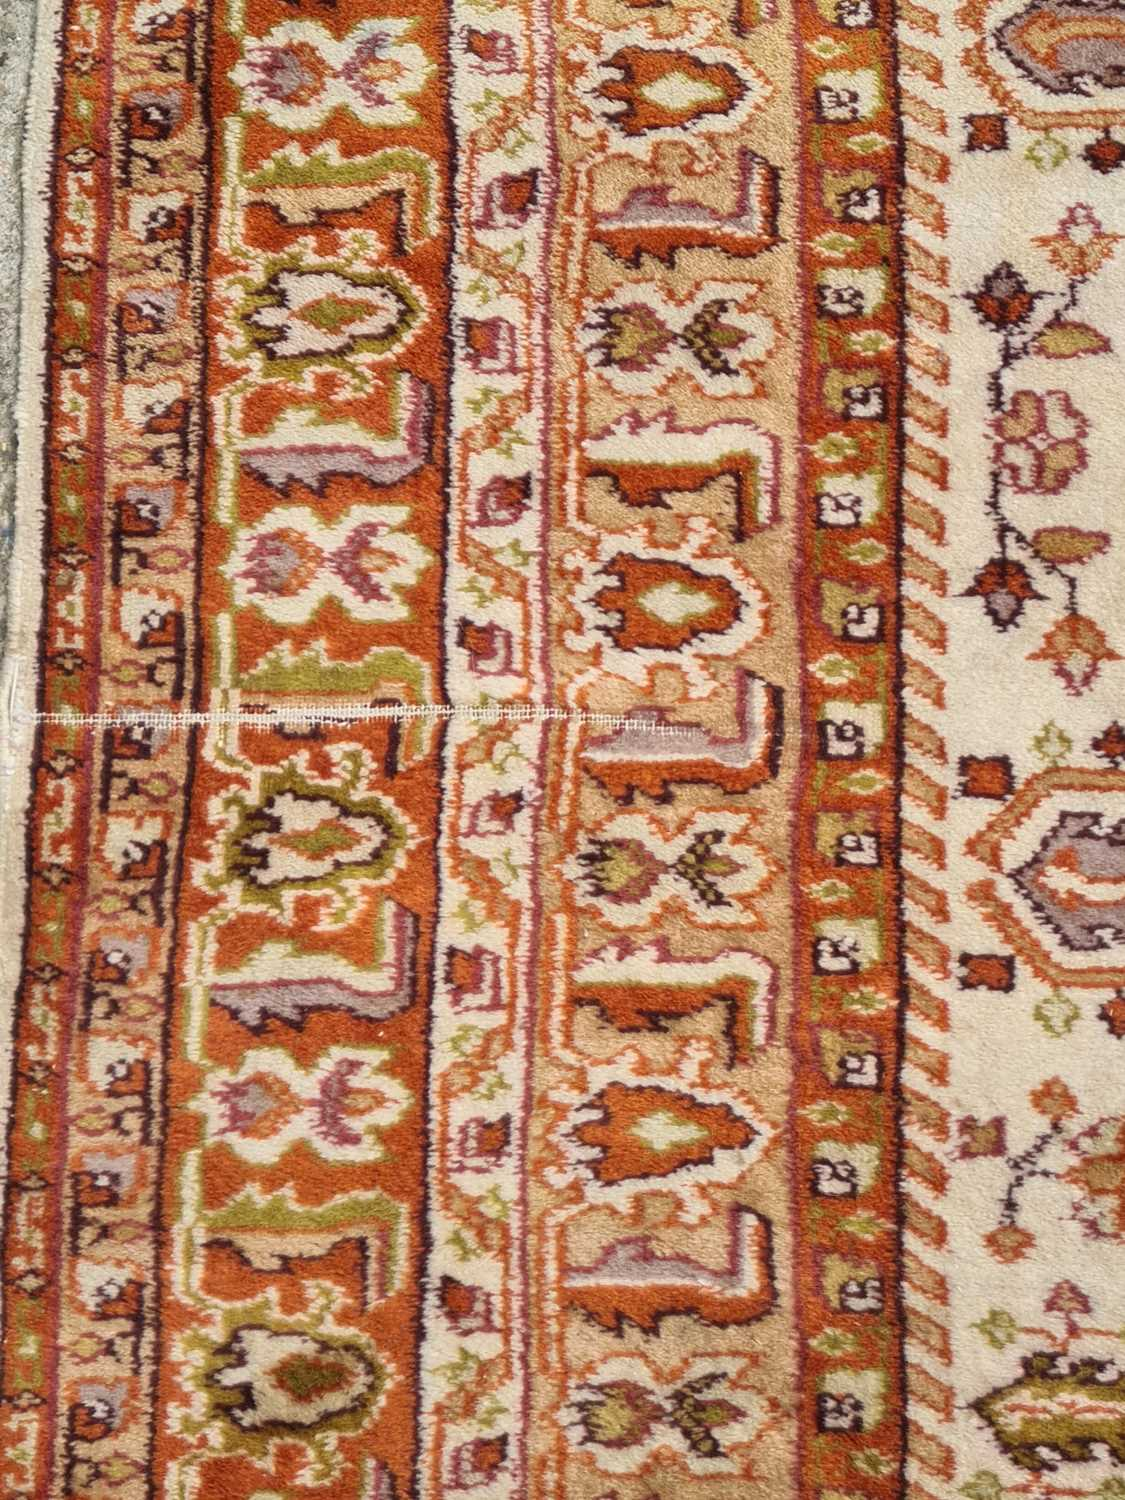 A 20th-century ivory ground Turkish rug with three rust coloured stepped cruciform lozenges within - Image 4 of 4